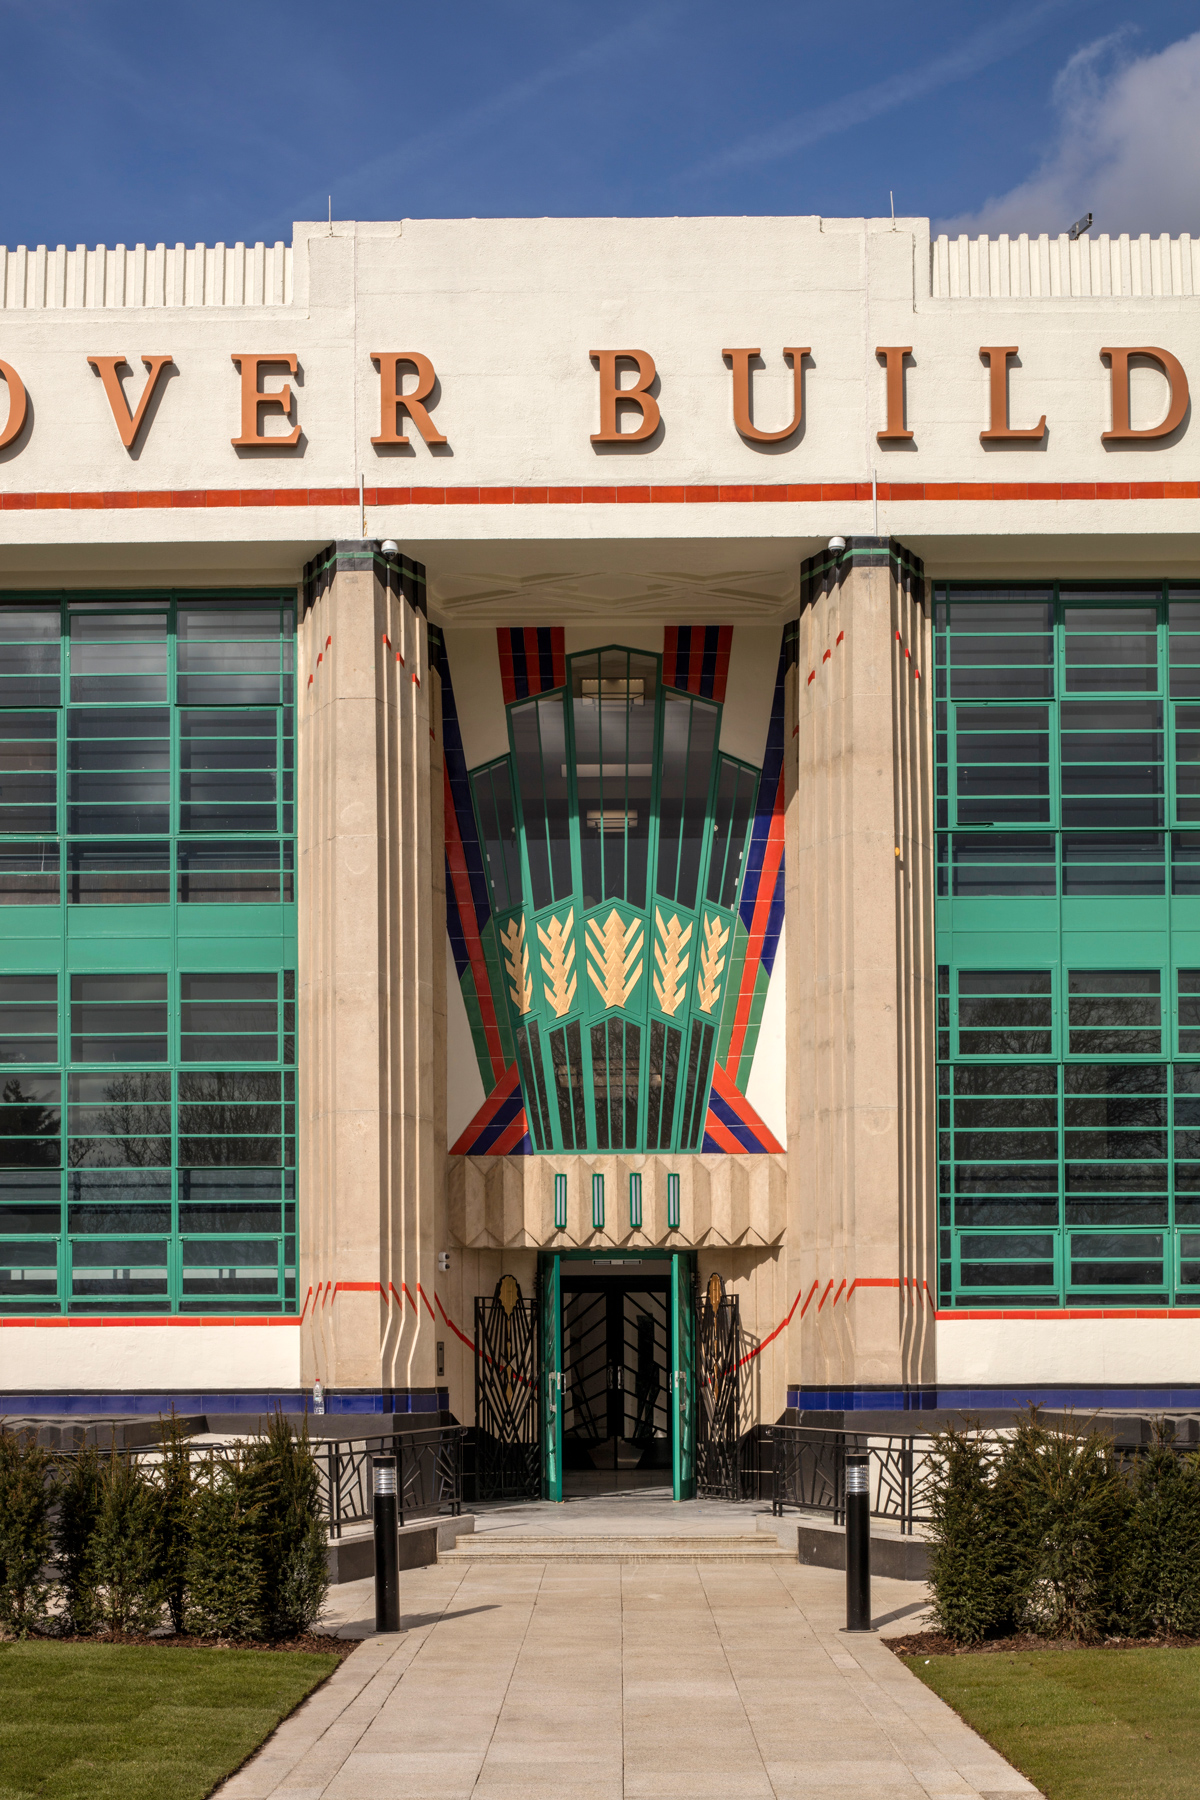 london s art deco hoover building gets a facelift 66 new apartments